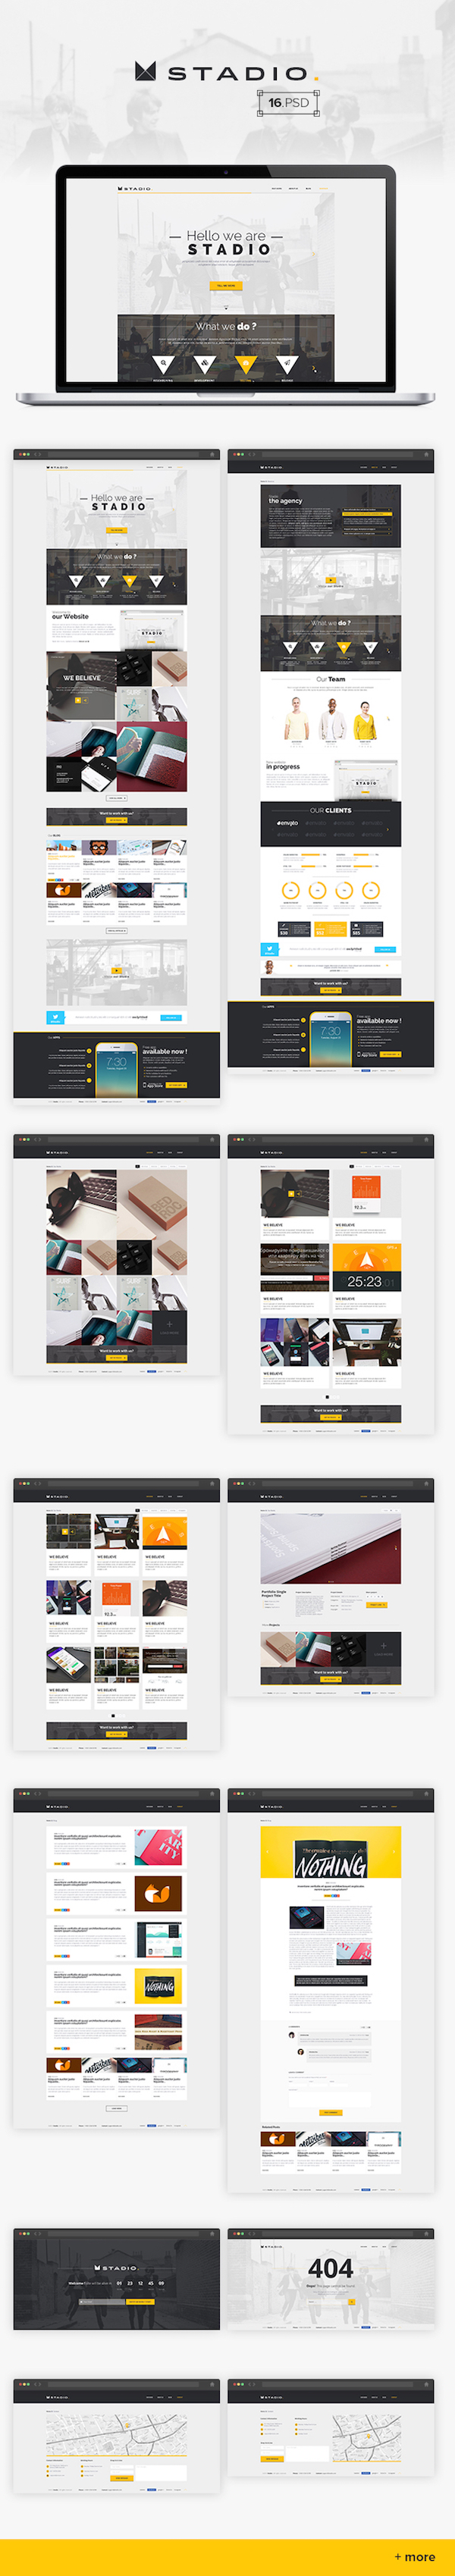 best-free-website-psd-templates